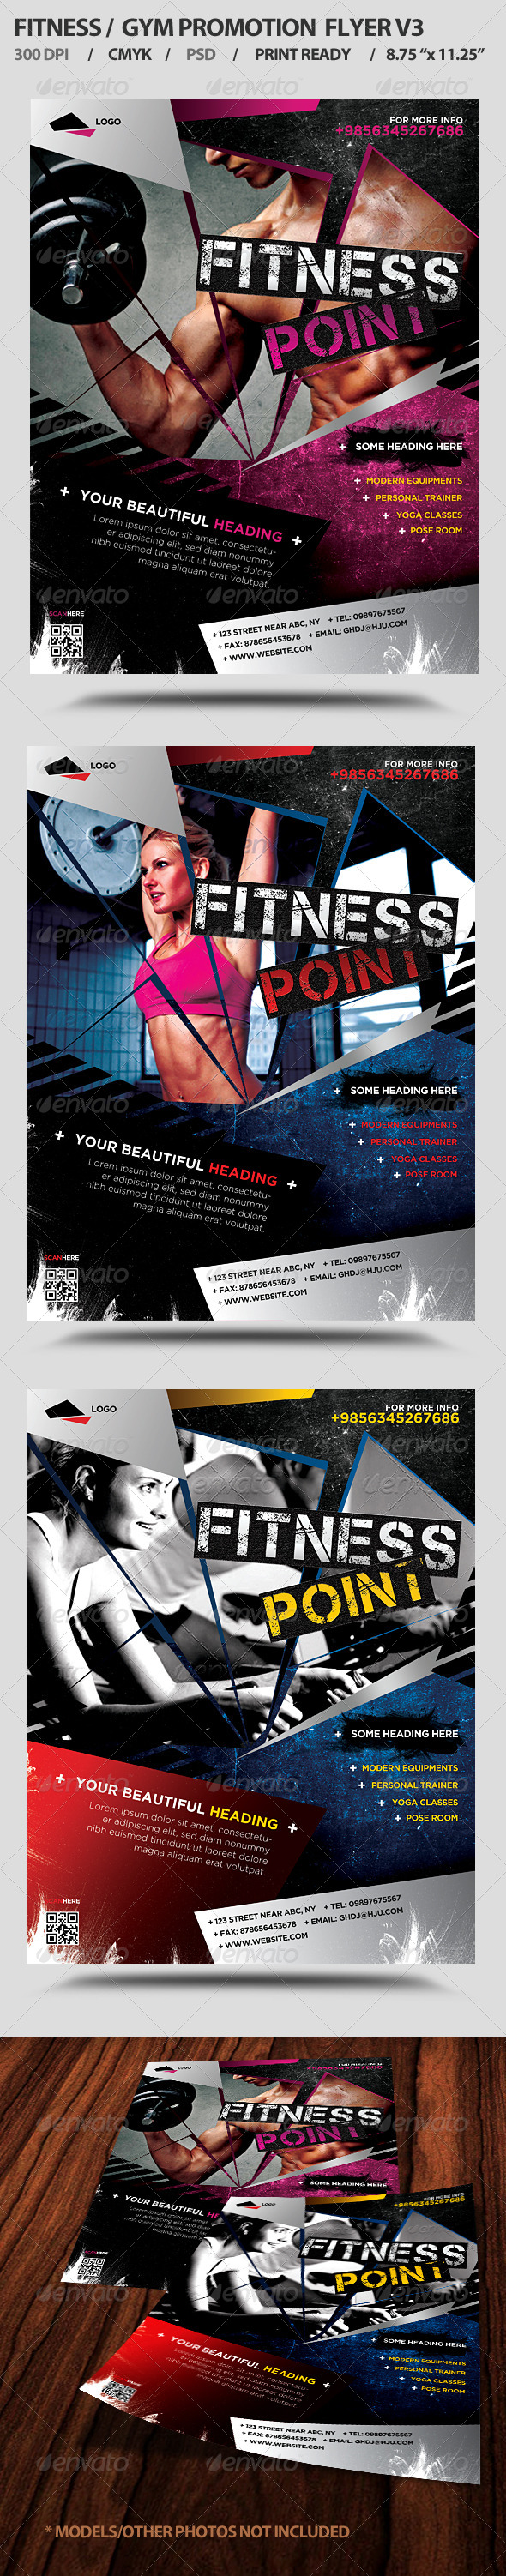 Fitness/Gym Business Promotion Flyer V3 - Sports Events